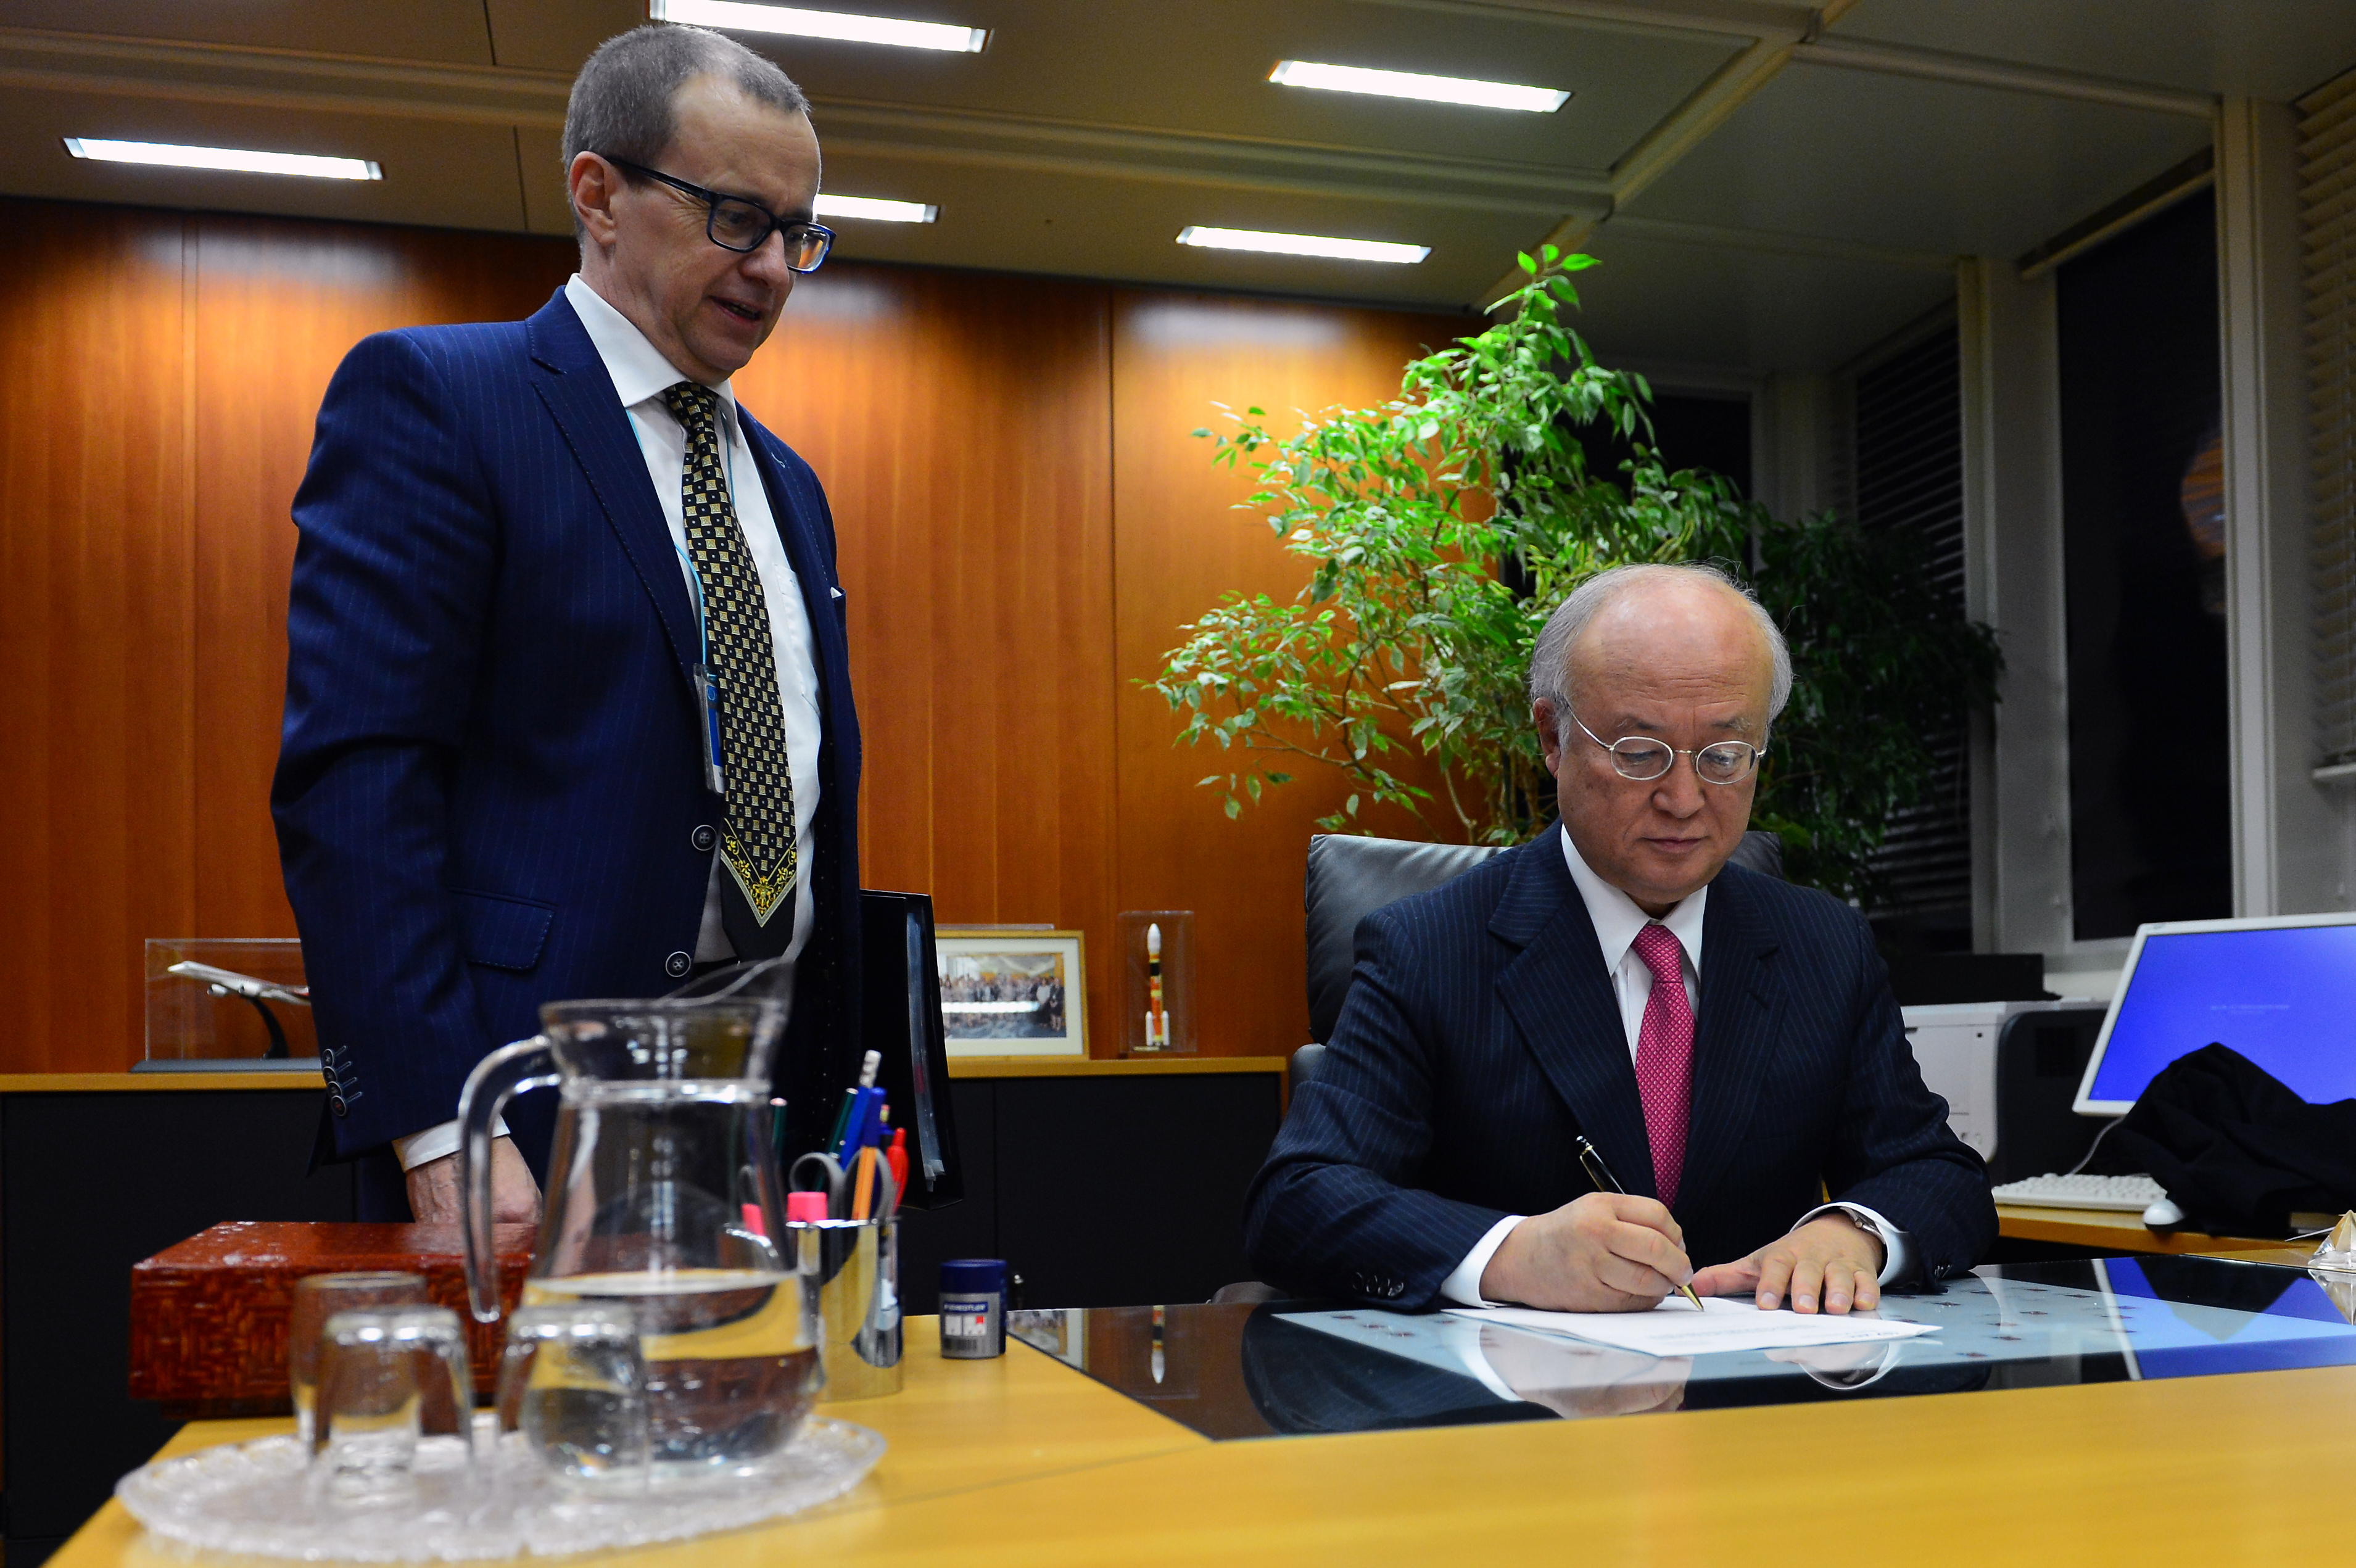 IAEA Director Yukia Amano clears a report paving the way for full implementation of the JCPOA.